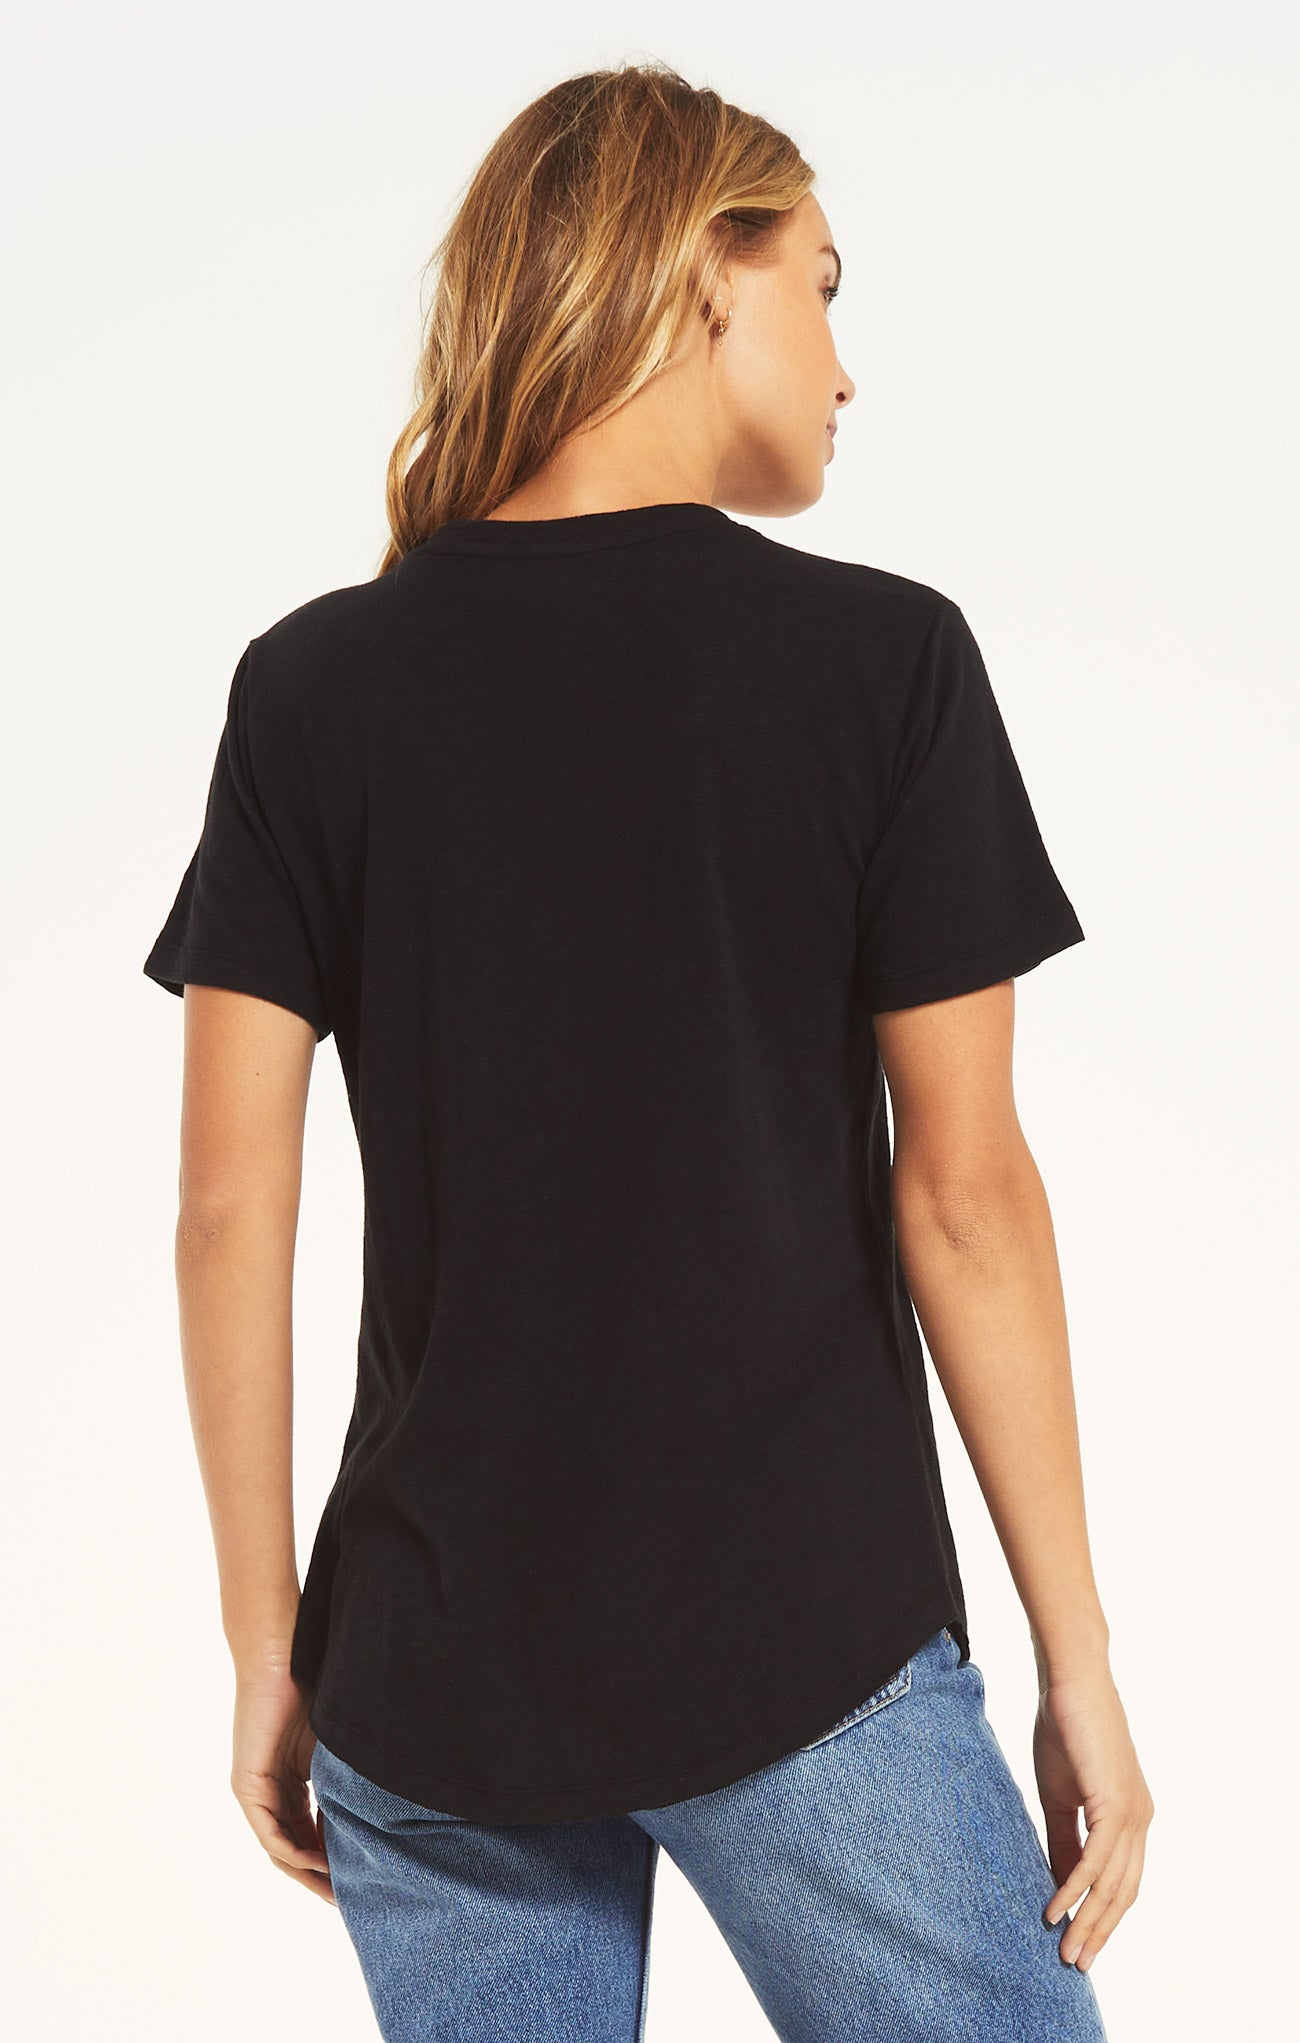 Tops Cotton Slub V-Neck Tee Black